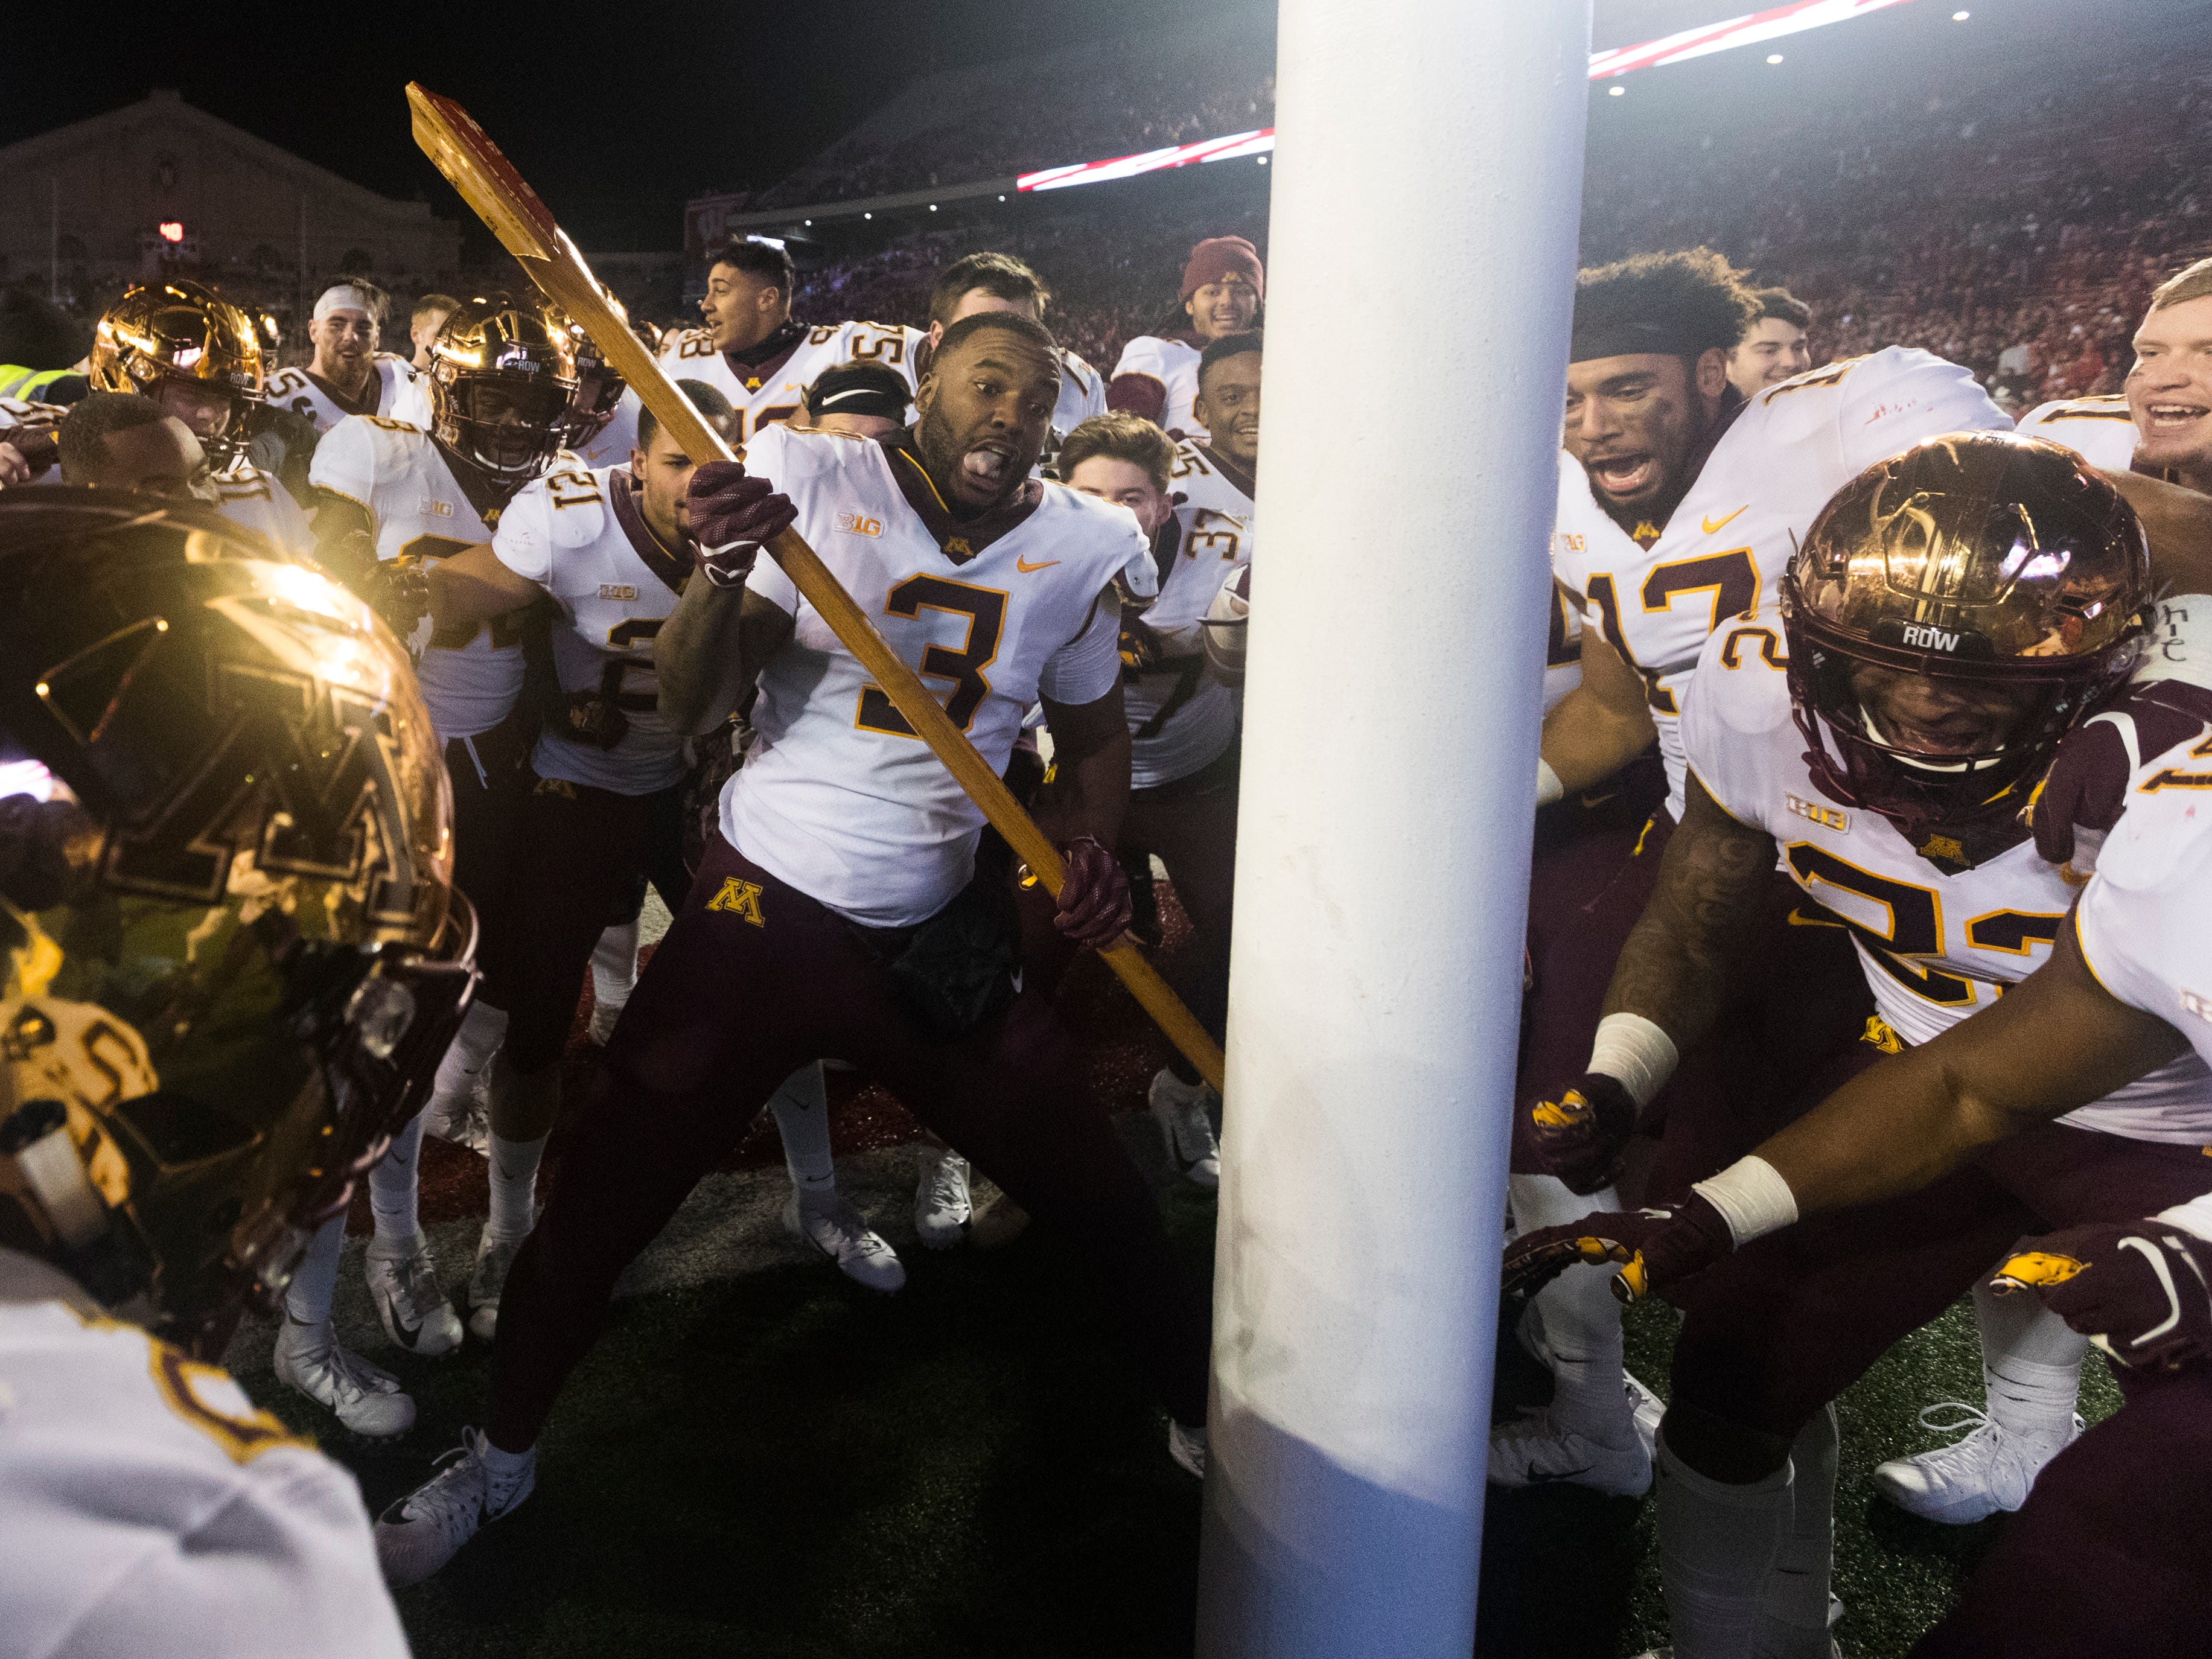 Minnesota defensive lineman Jerry Gibson uses Paul Bunyan's Axe to cut down a goalpost after the Gophers beat Wisconsin on Saturday.